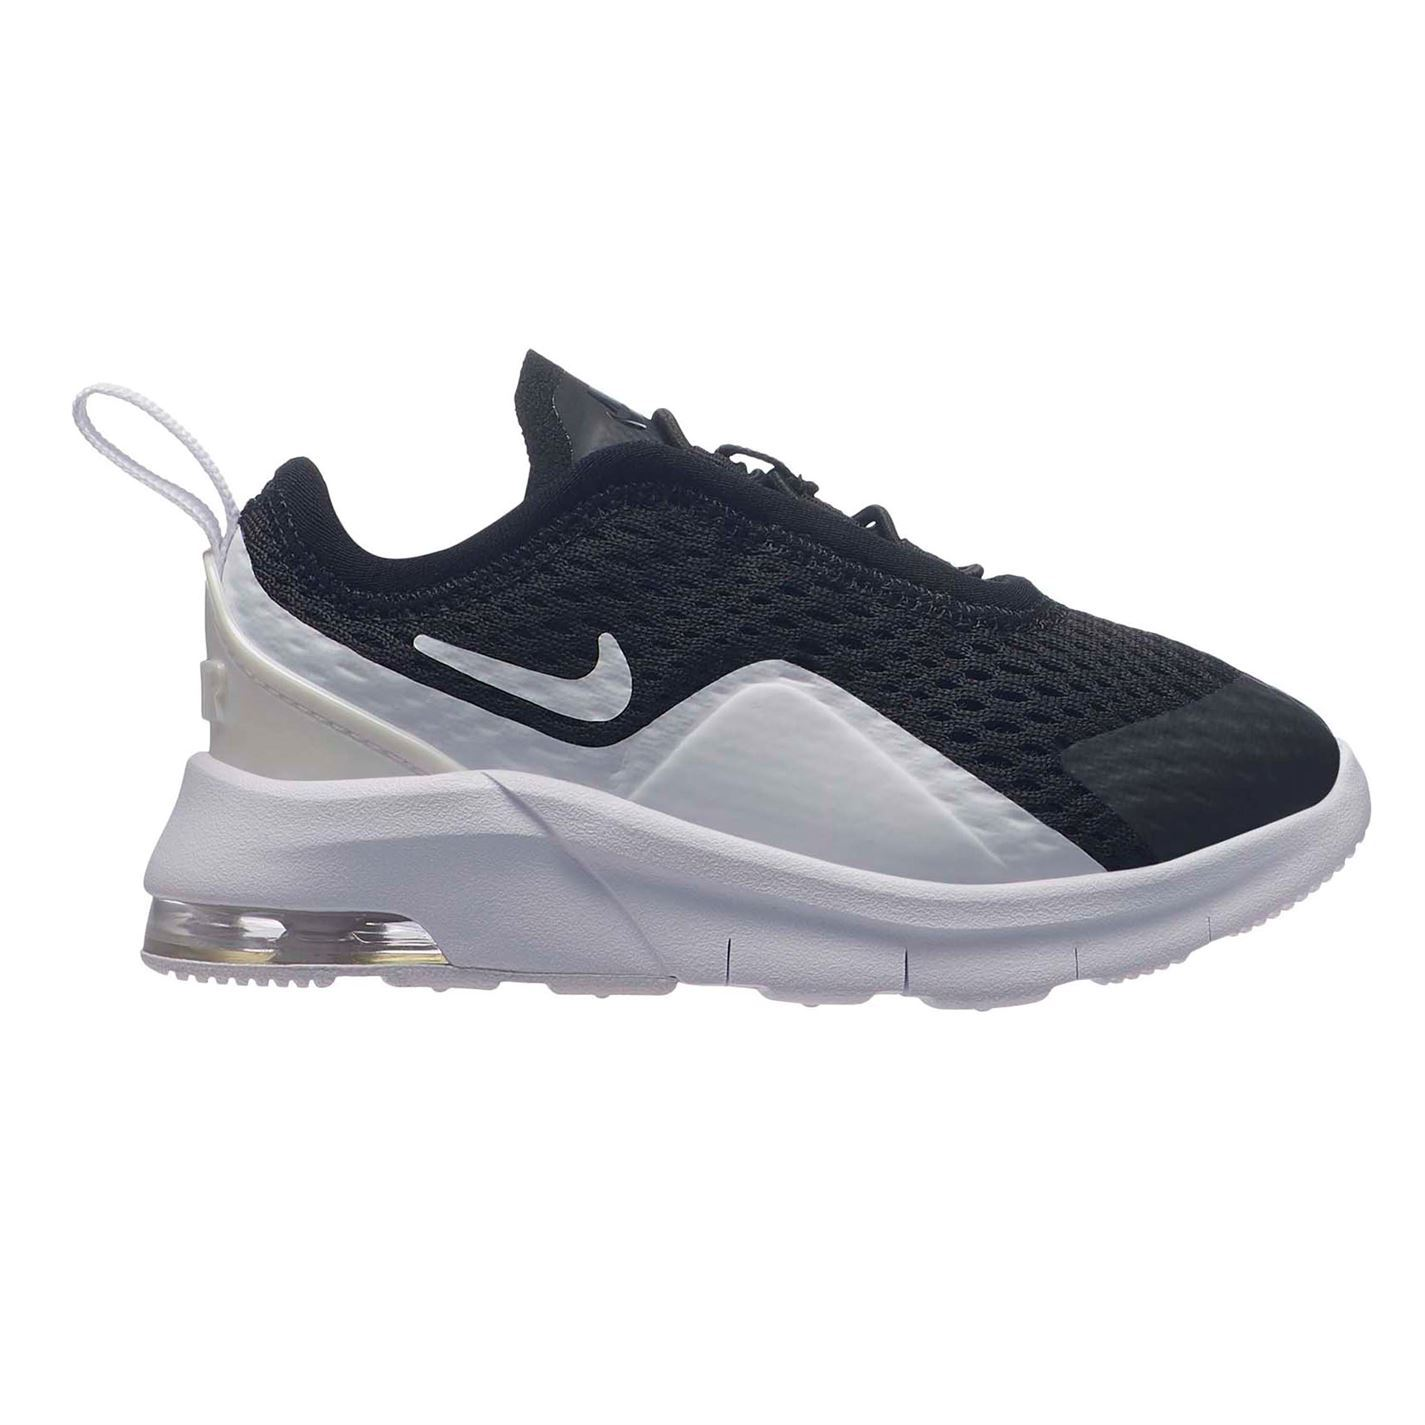 Details about Nike Air Max Motion 2 Trainers Infants Boys BlackWhite Shoes Sneakers Footwear